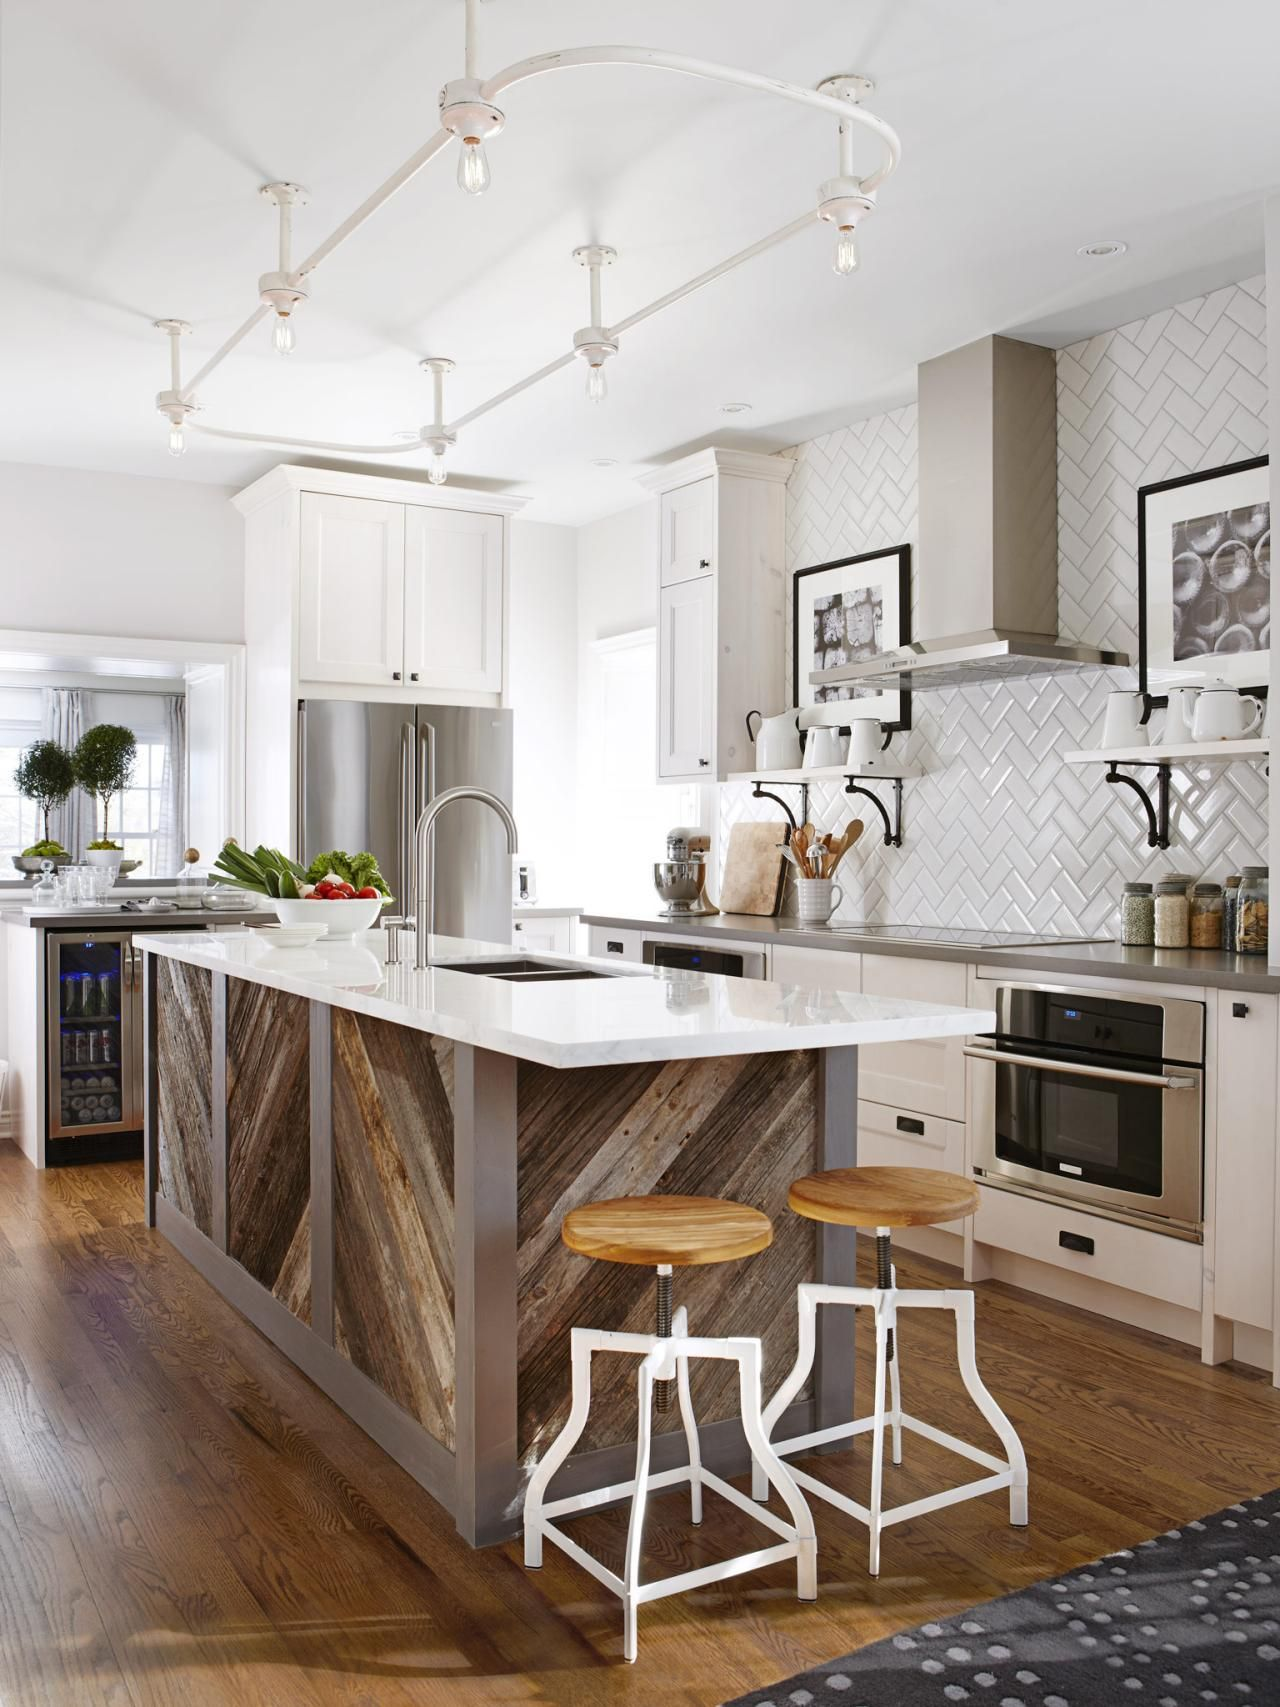 20 Dreamy Kitchen Islands | Cucine, Isole e Albe